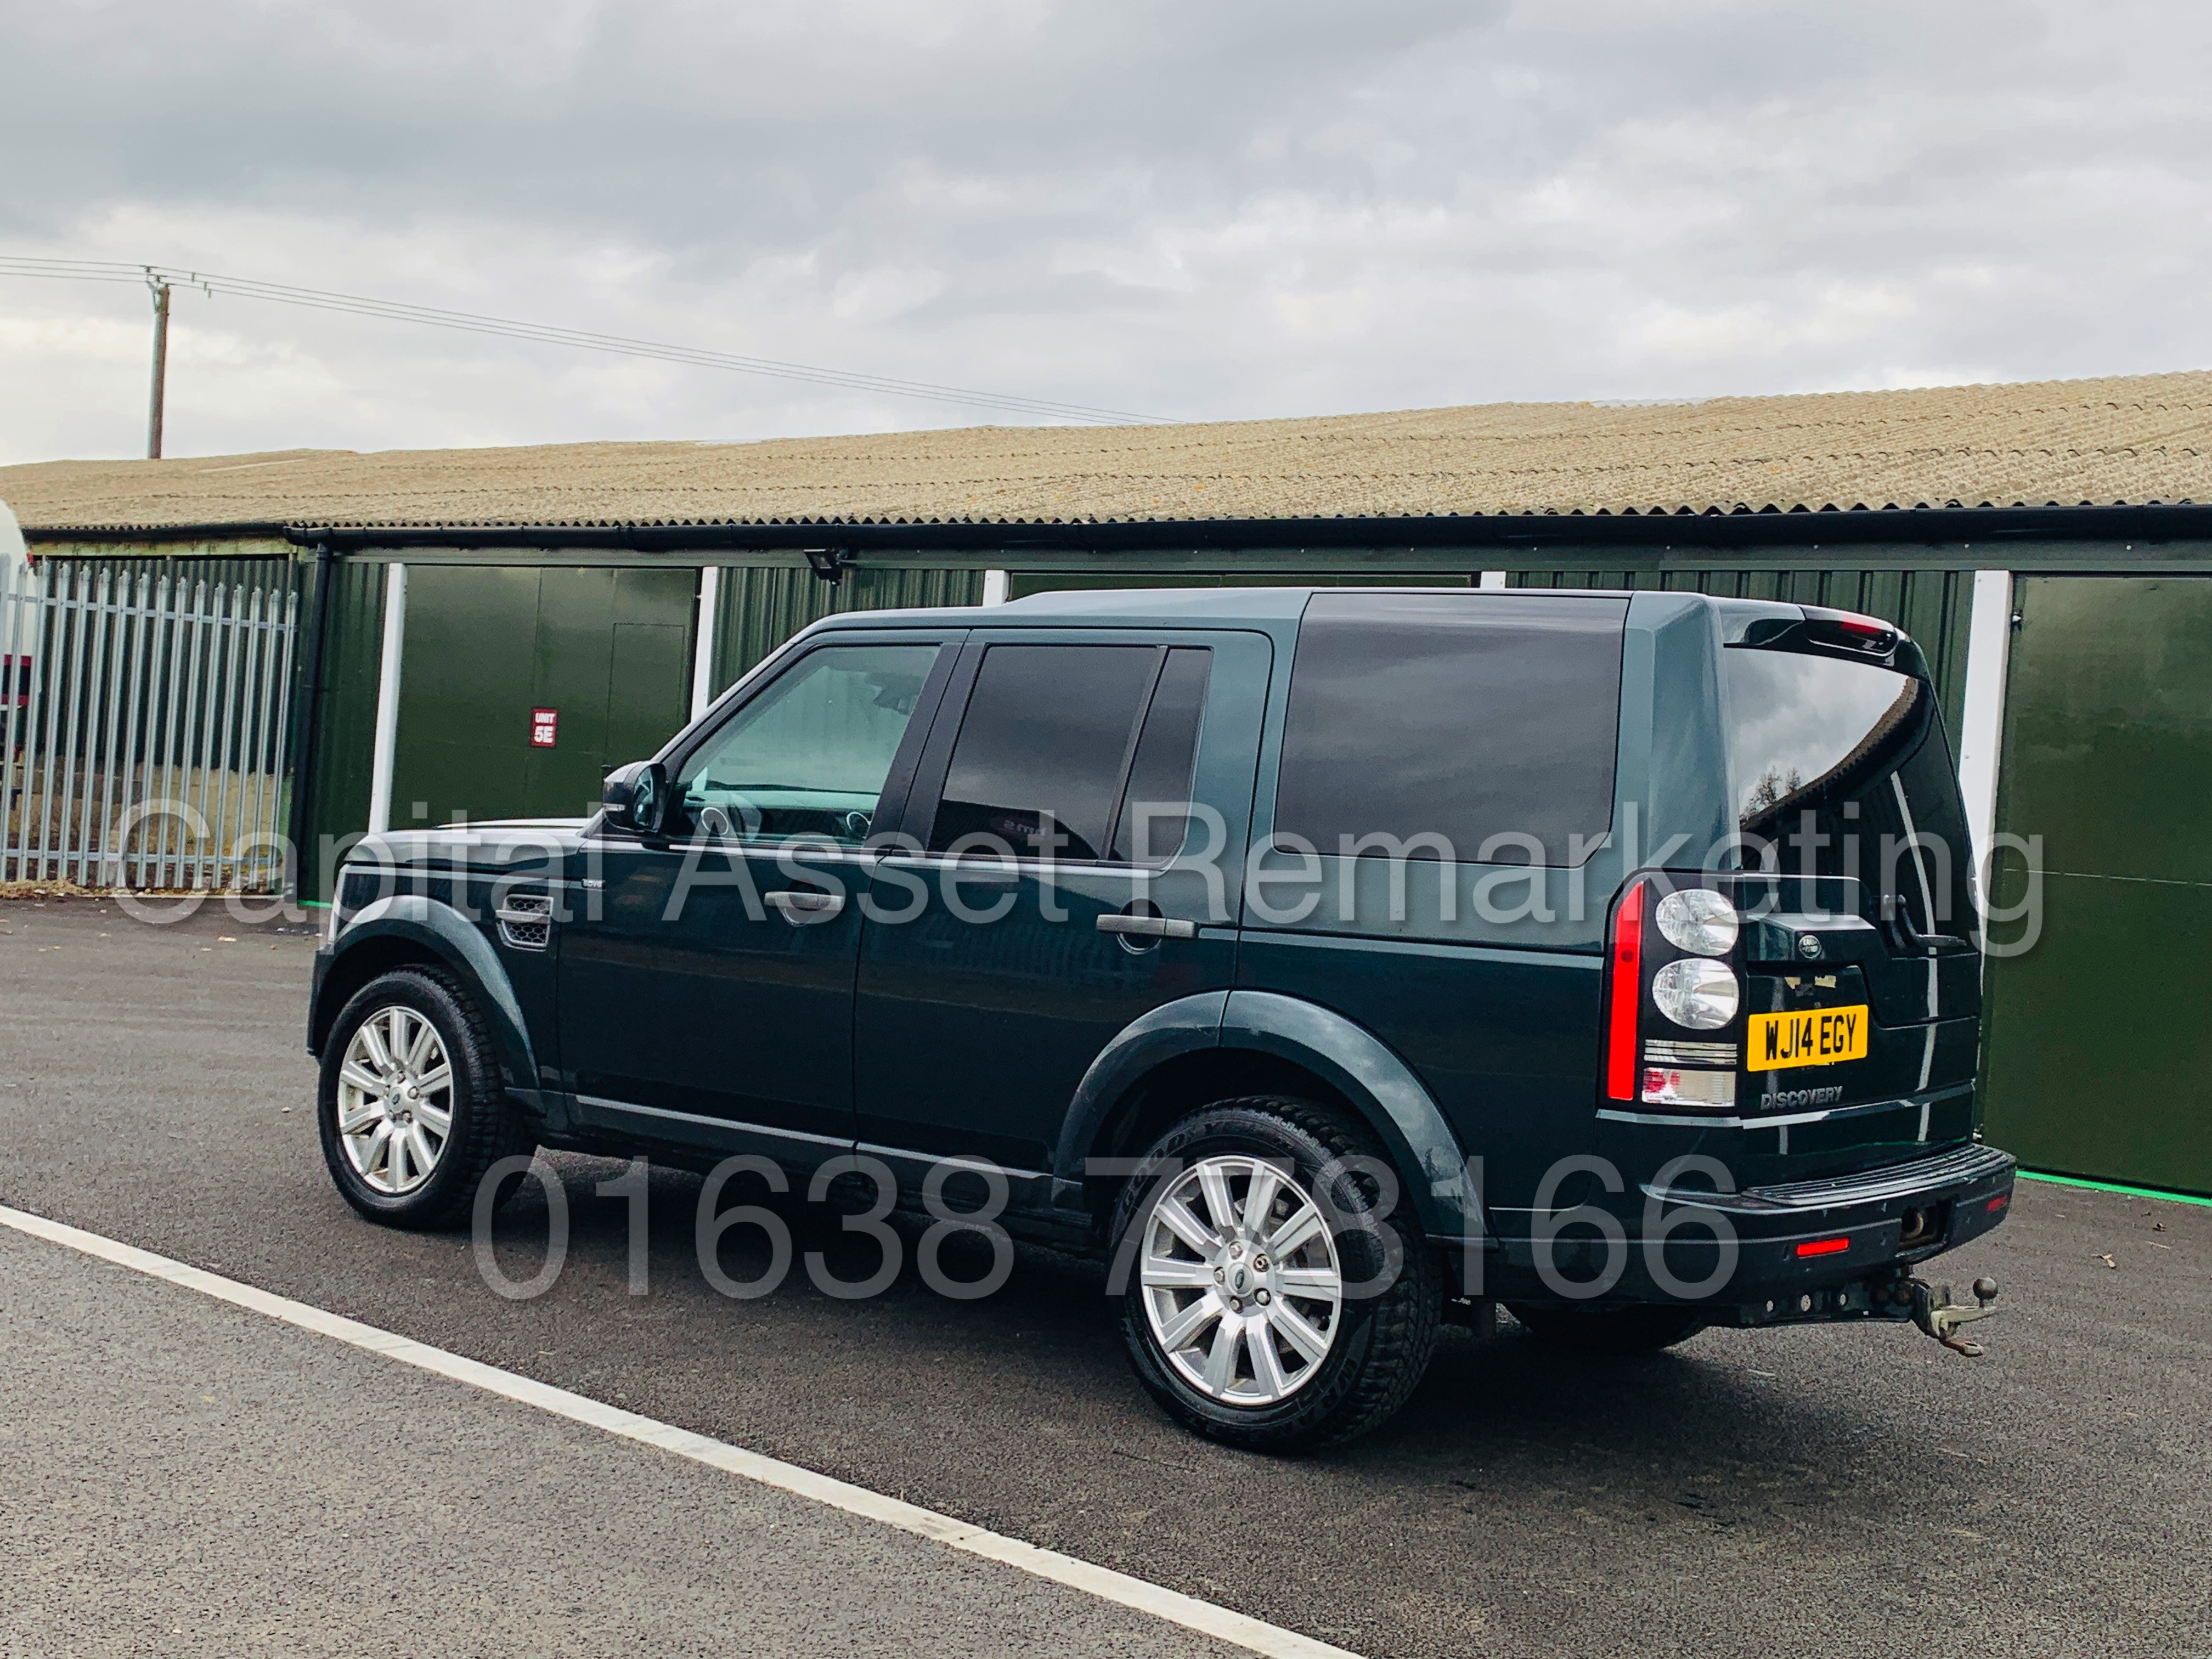 Lot 5 - LAND ROVER DISCOVERY 4 *XS EDITION* UTILITY COMMERCIAL (2014) '3.0 SDV6 - 8 SPEED AUTO' *TOP SPEC*